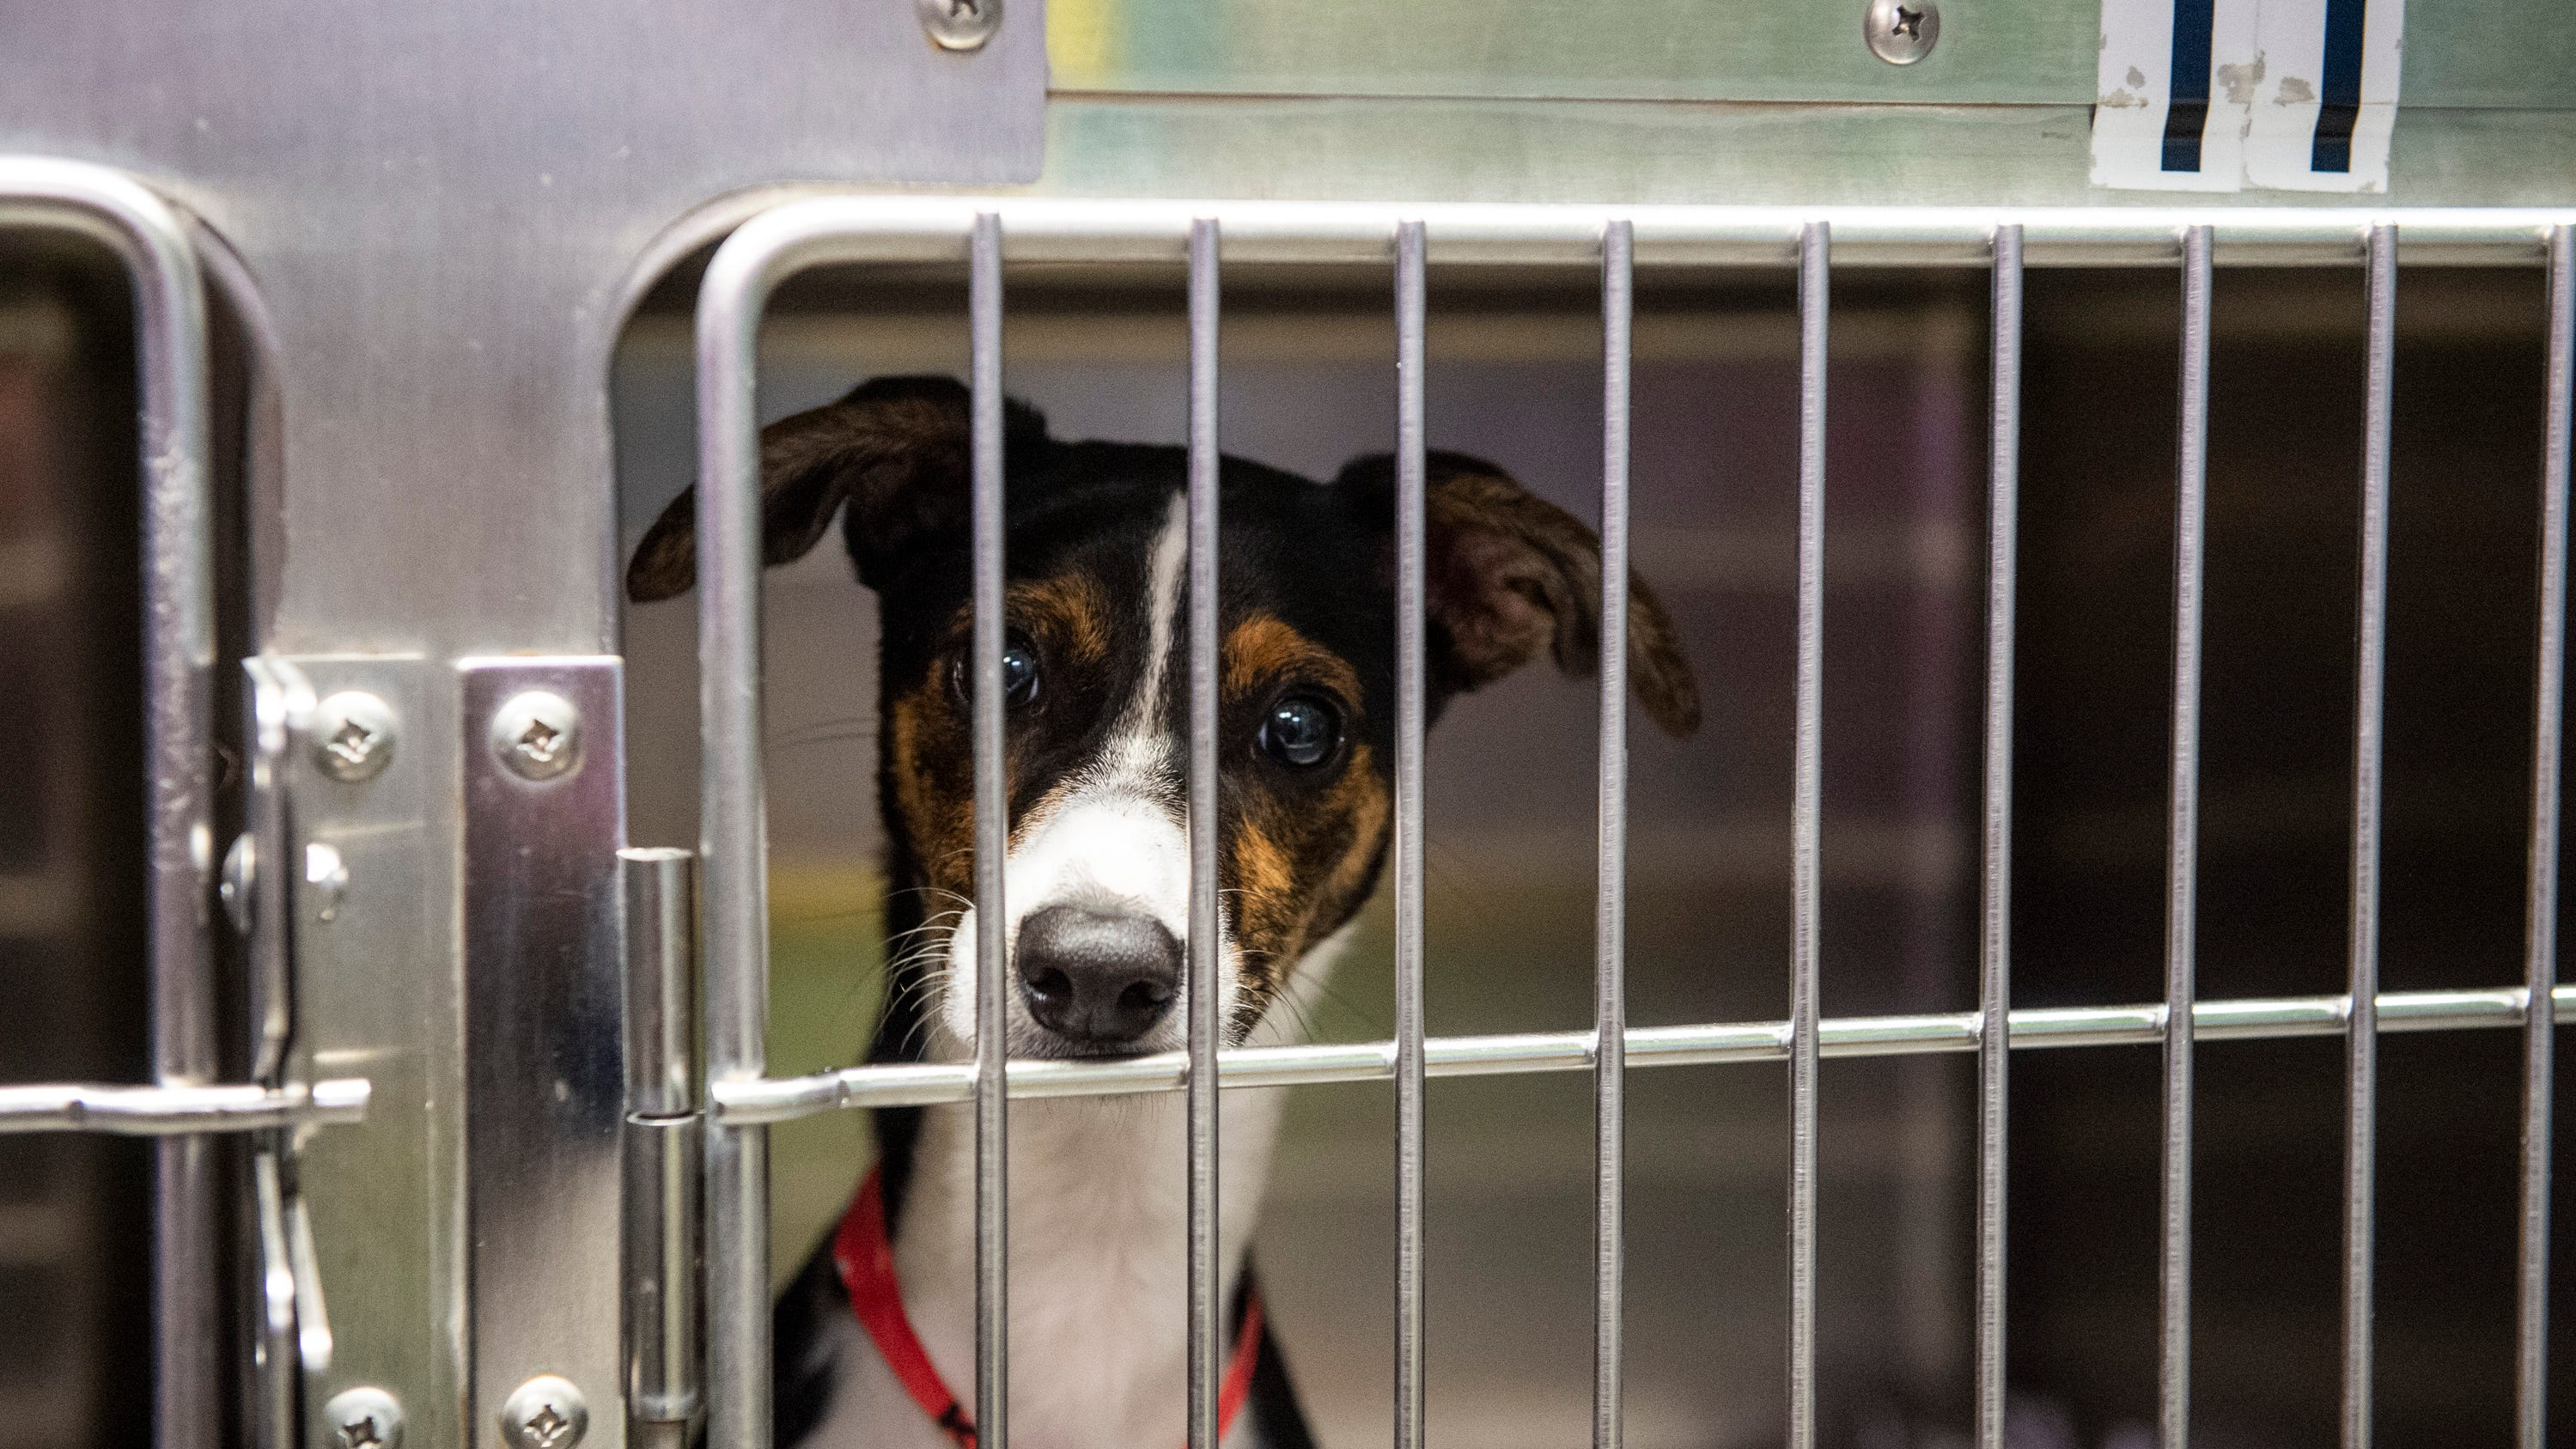 Think you may have to surrender your pet? Here's how to get help